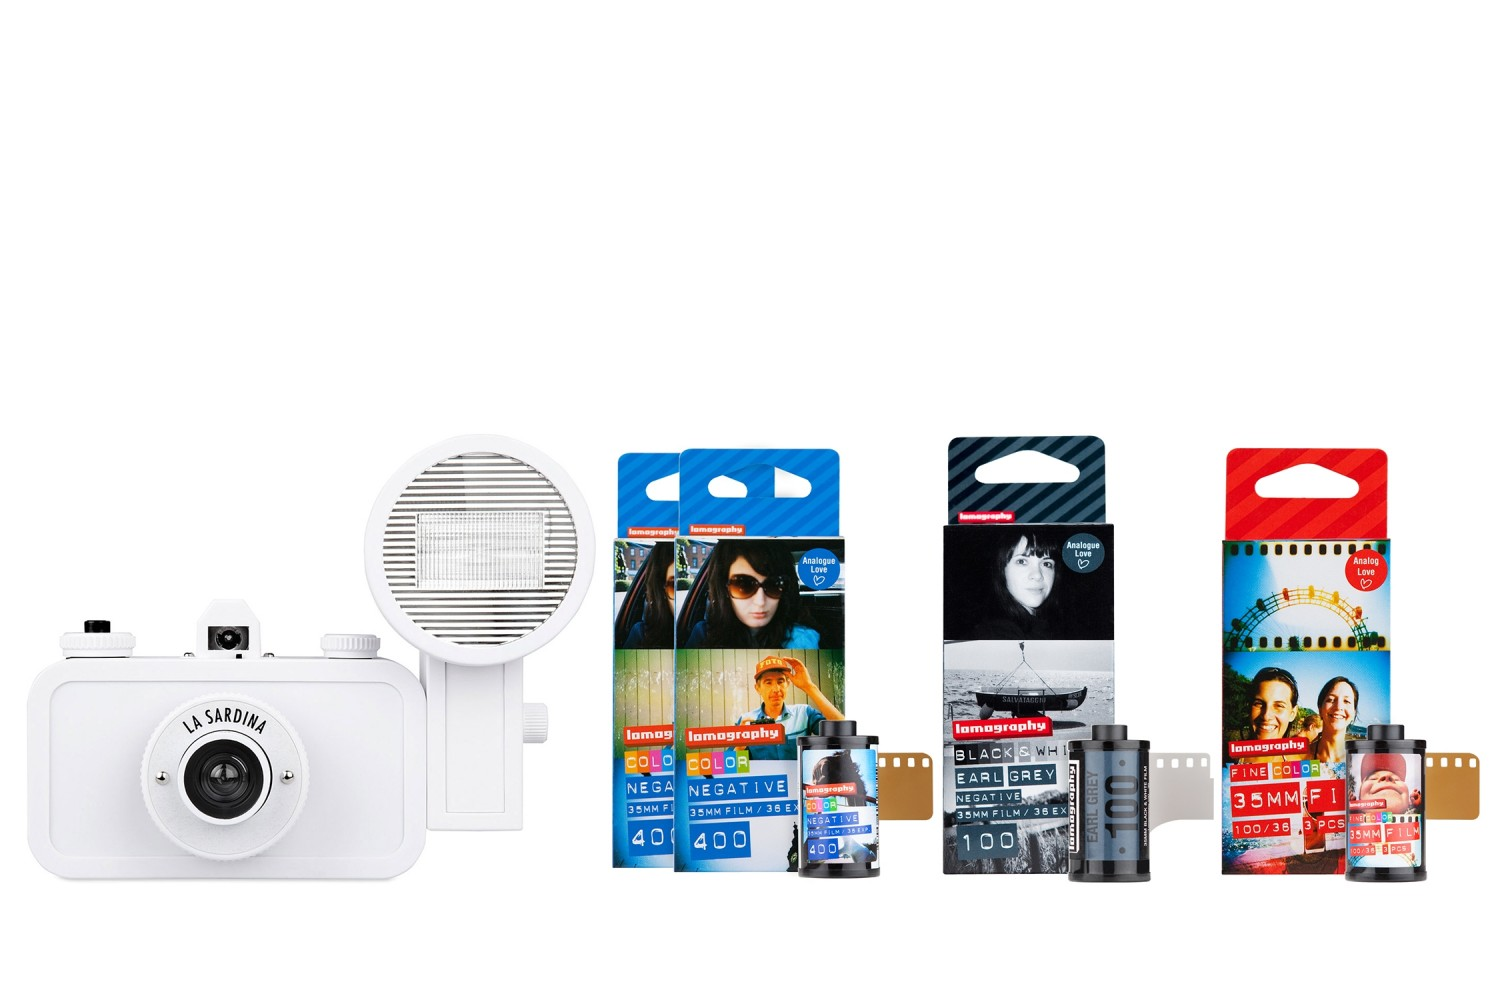 La Sardina Camera and Flash DIY Film Bundle